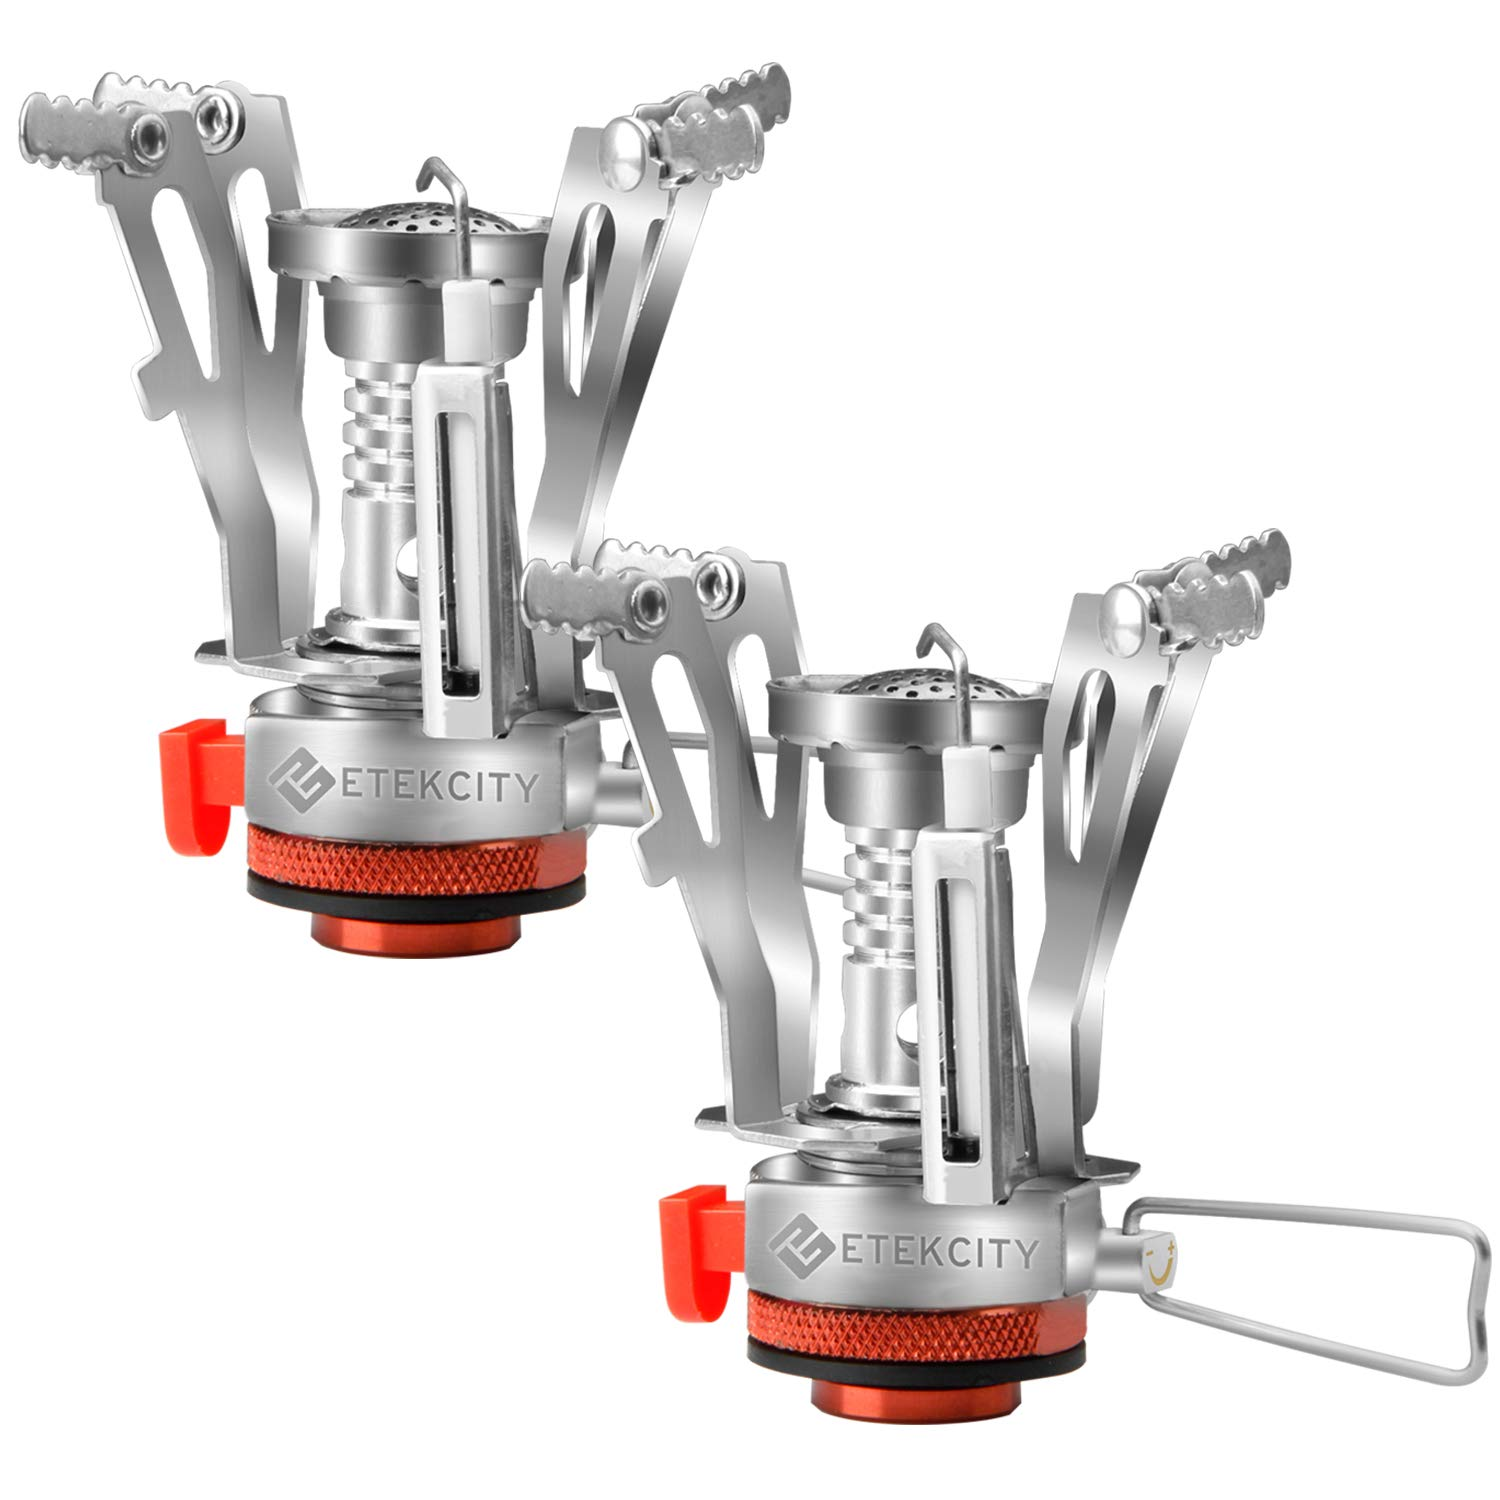 Etekcity Ultralight Portable Outdoor Backpacking Camping Stove with Piezo Ignition (2pack), Survival Kit for Emergency, Hurricane, Earthquake by Etekcity